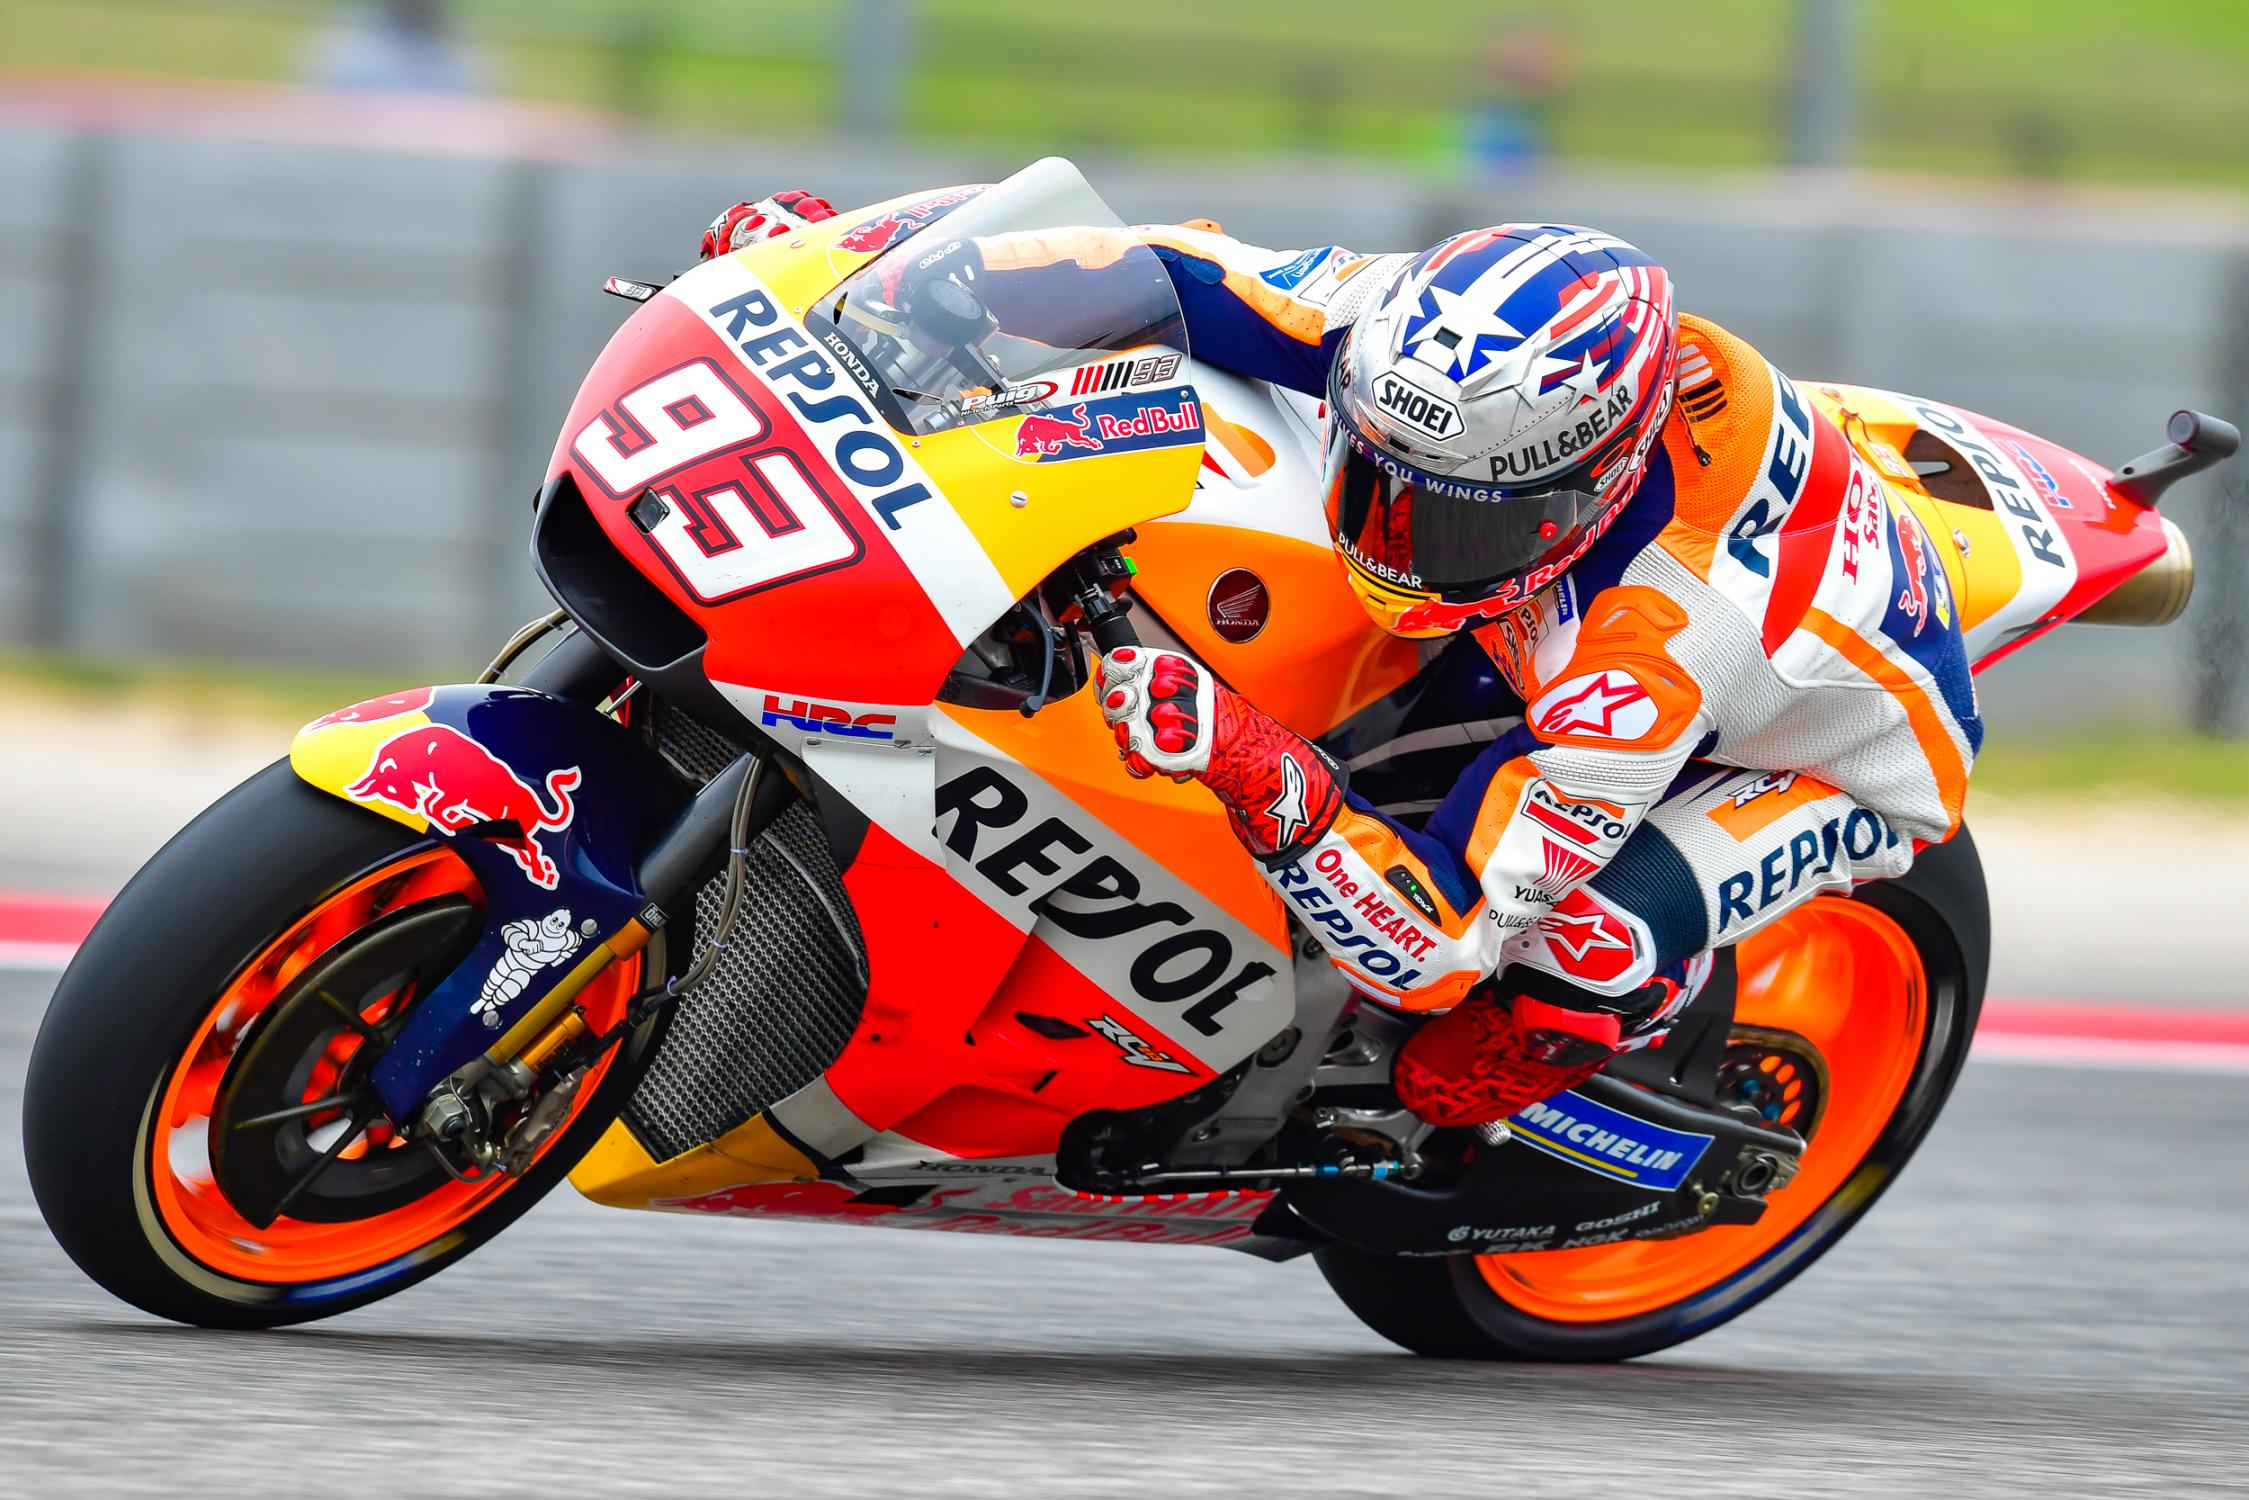 93-marc-marquez-esp_ds56746.gallery_full_top_fullscreen.jpg